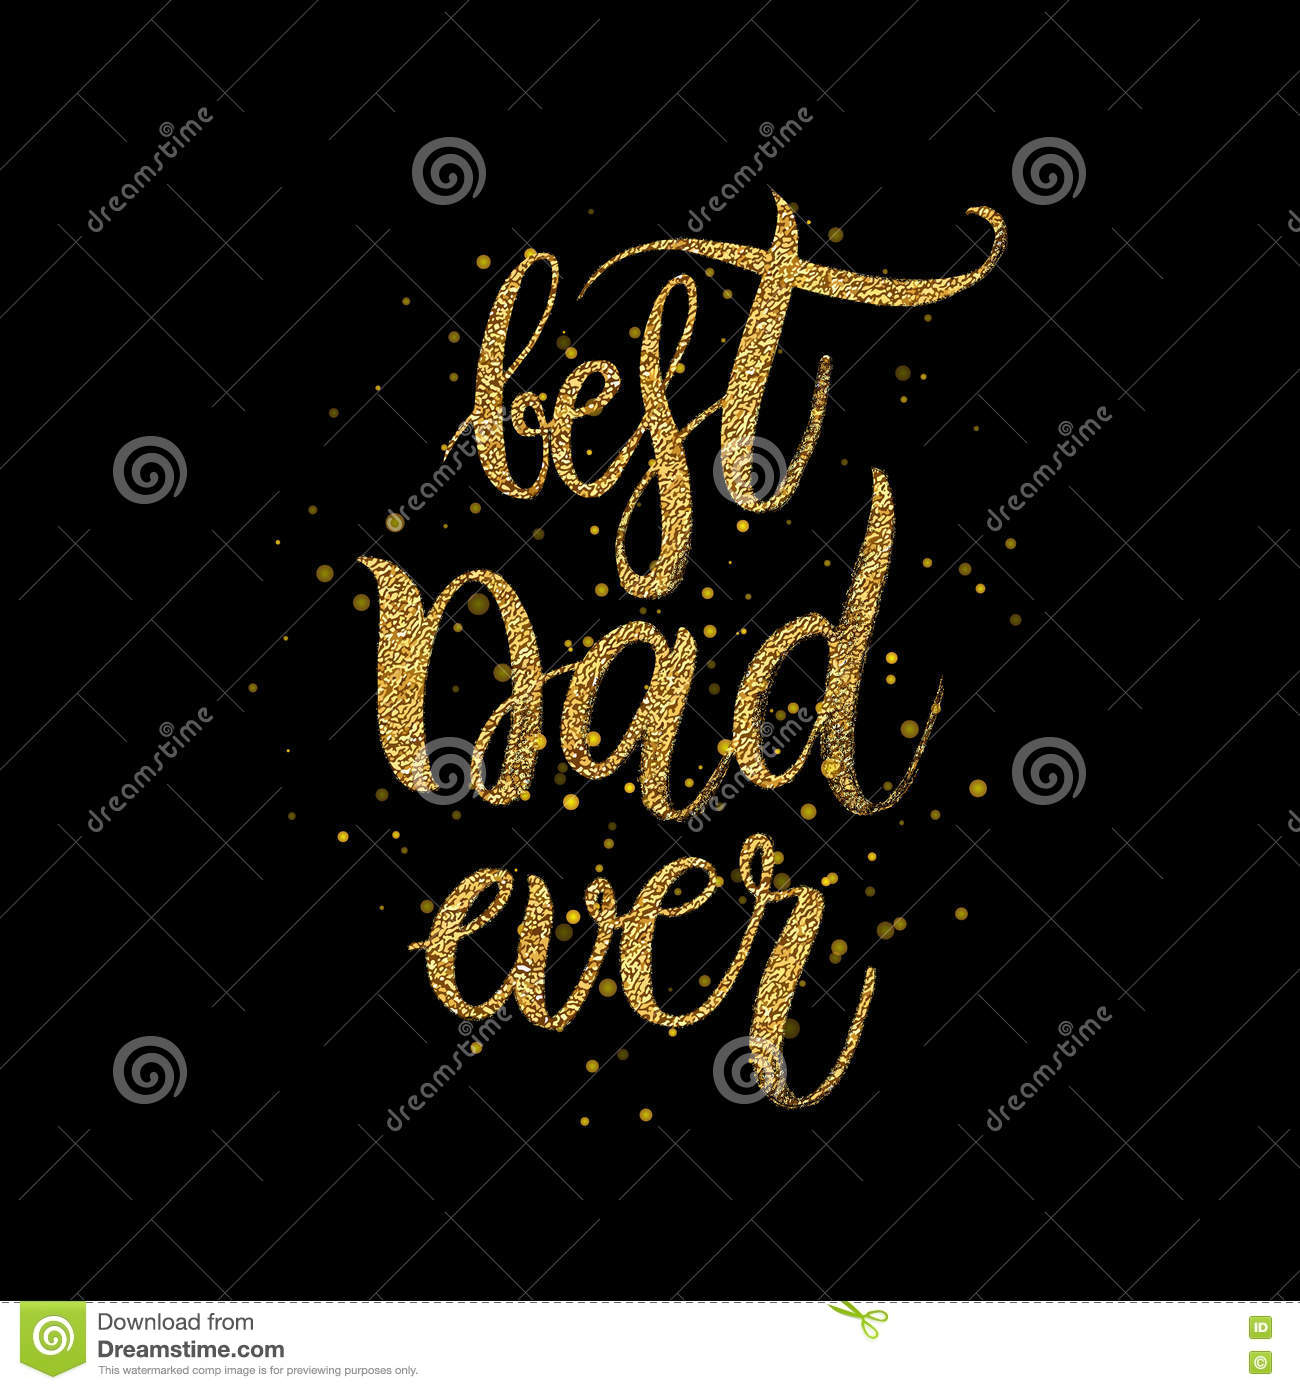 Best Dad Ever Gold Text On Black Background Stock Vector